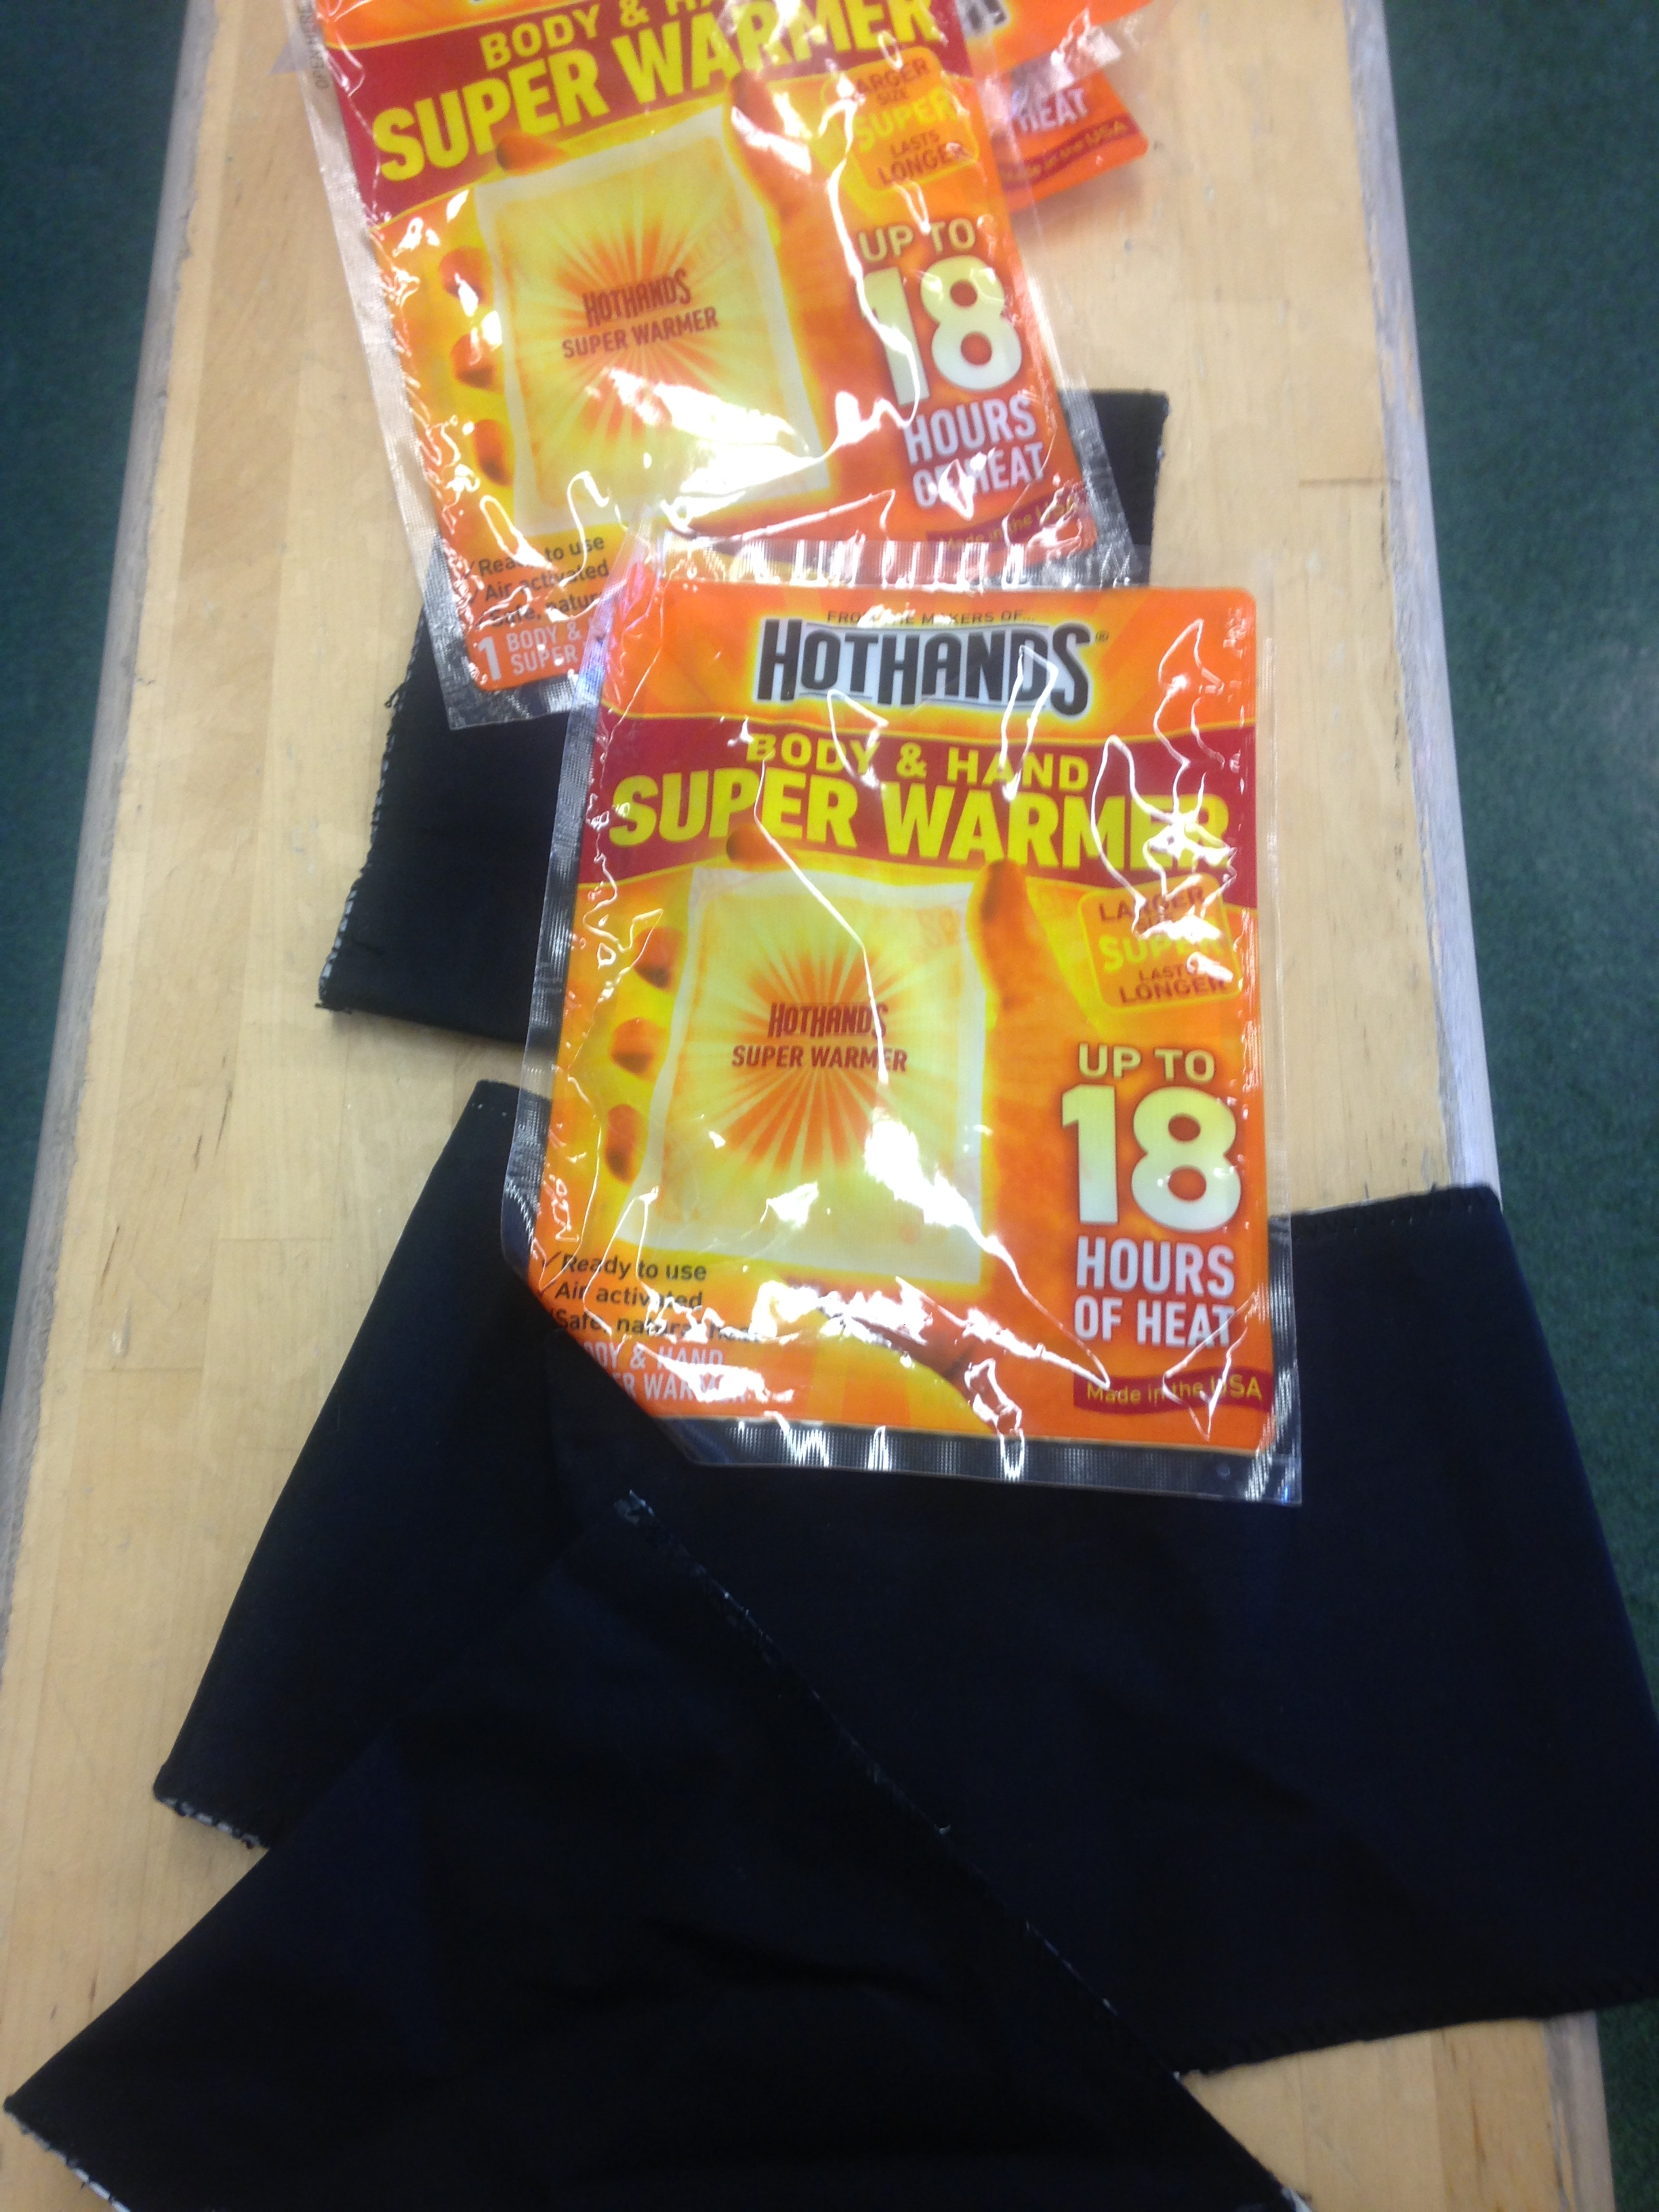 Prototype showing the cloth pouches and heat pads that are inserted in the cloth pouches.